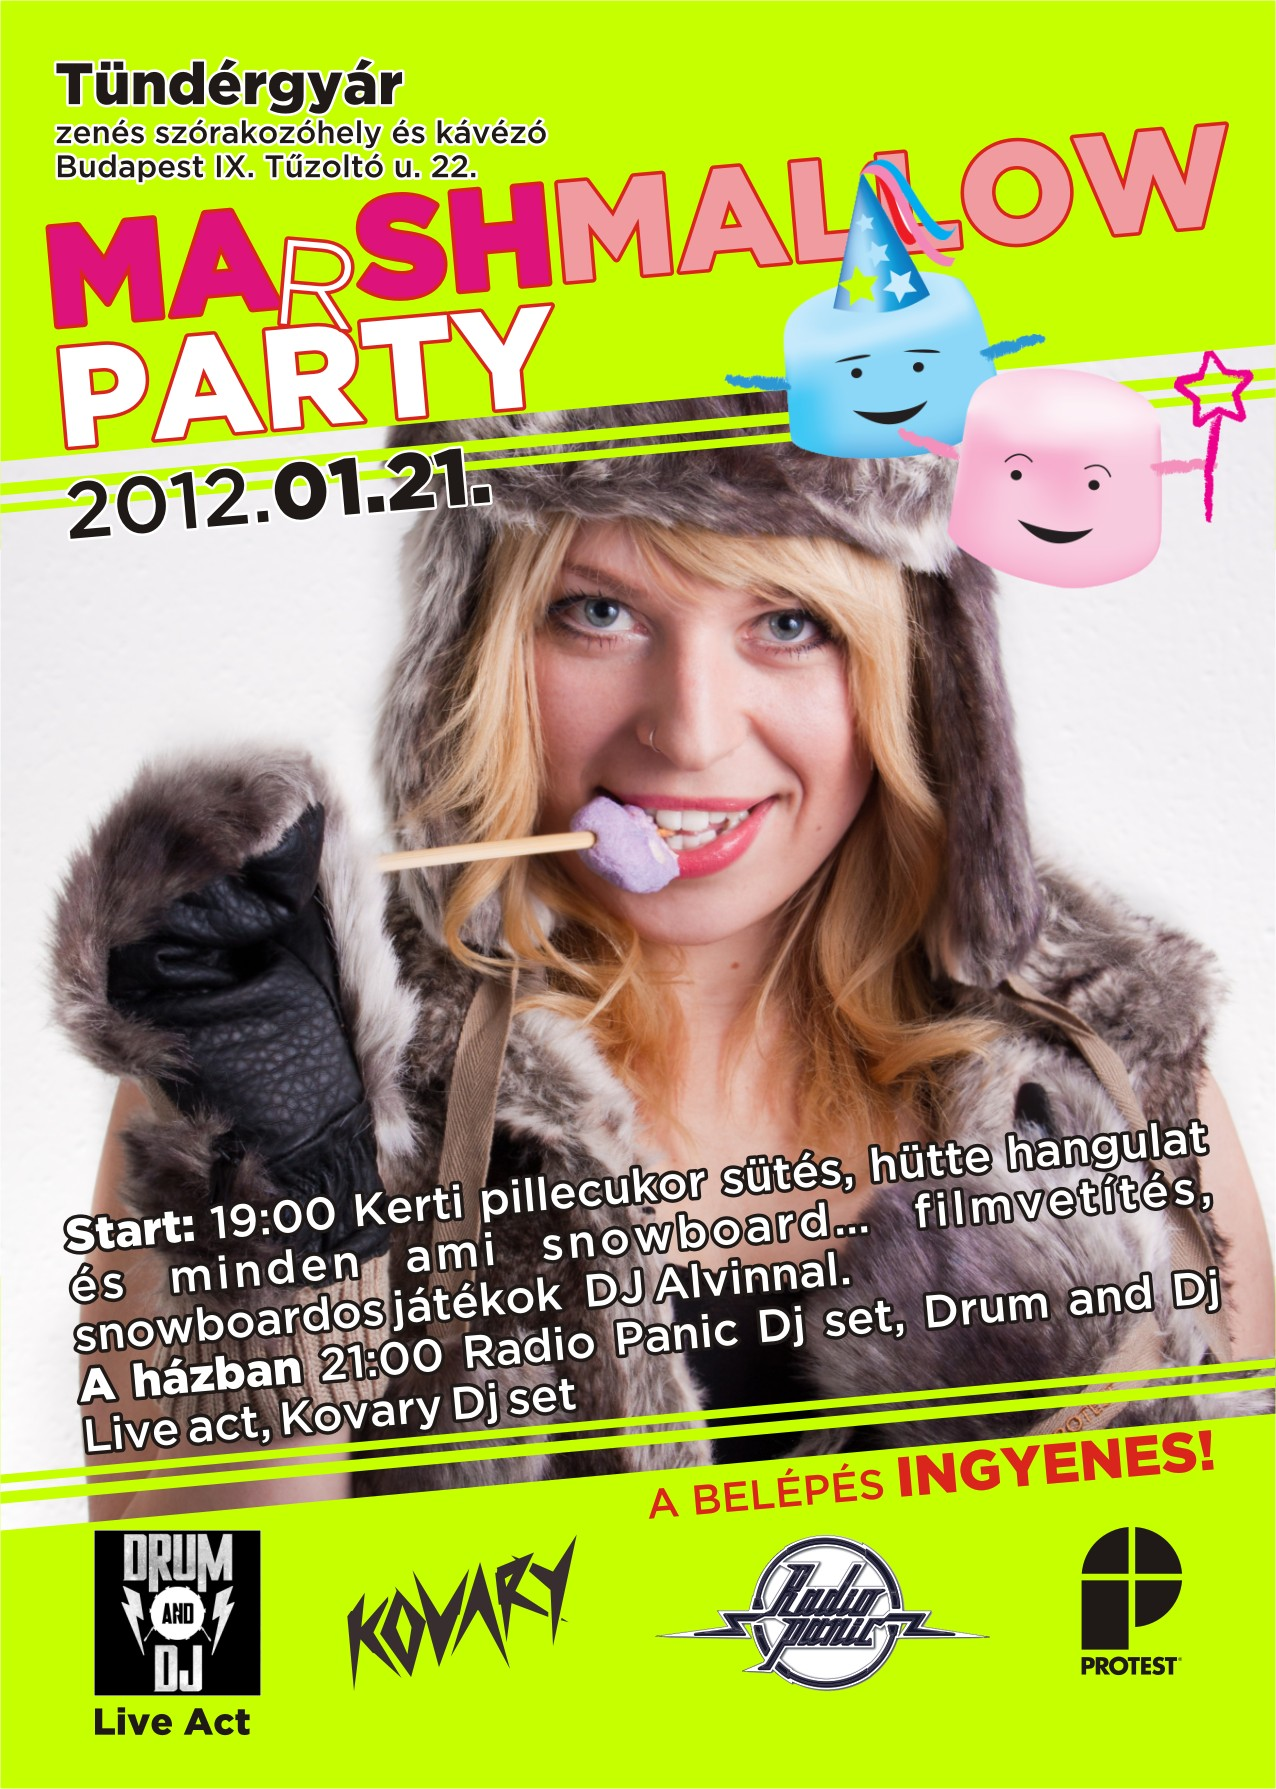 MArSHMALLOW Party + drum 'n' dj live act